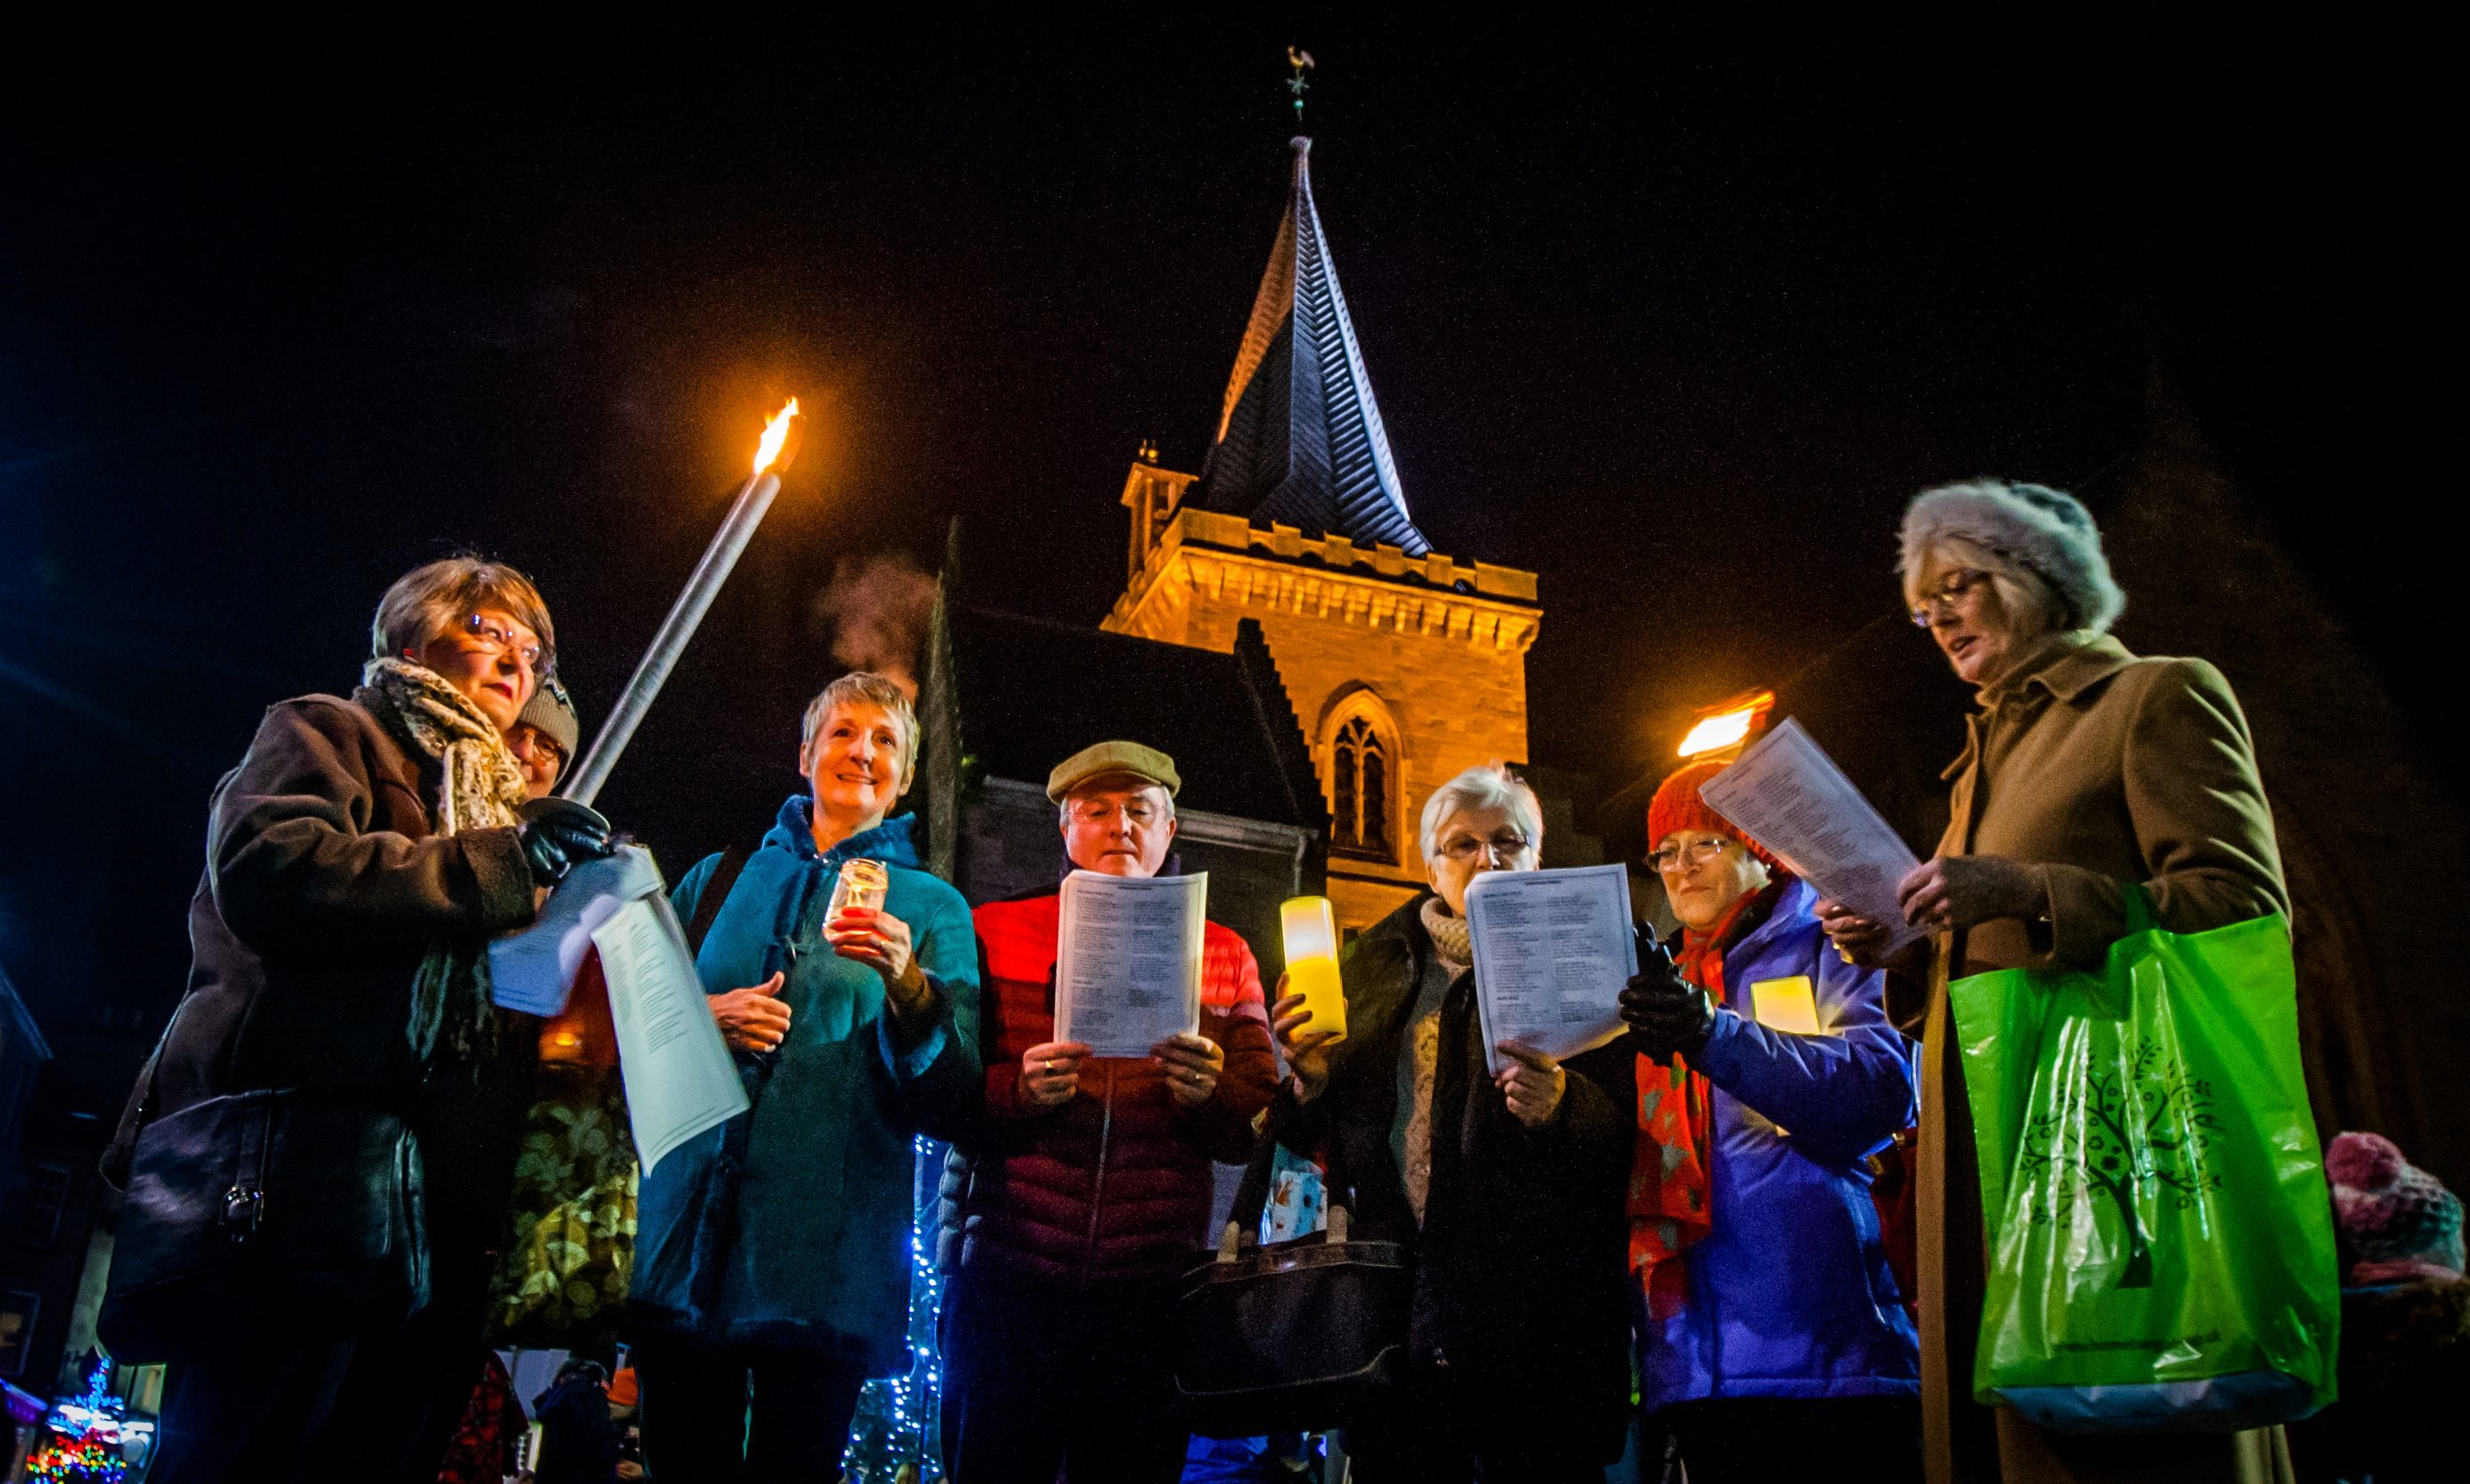 The parade gathered in front of St John's Kirk. St John's Kirk, Kirkside, Perth.